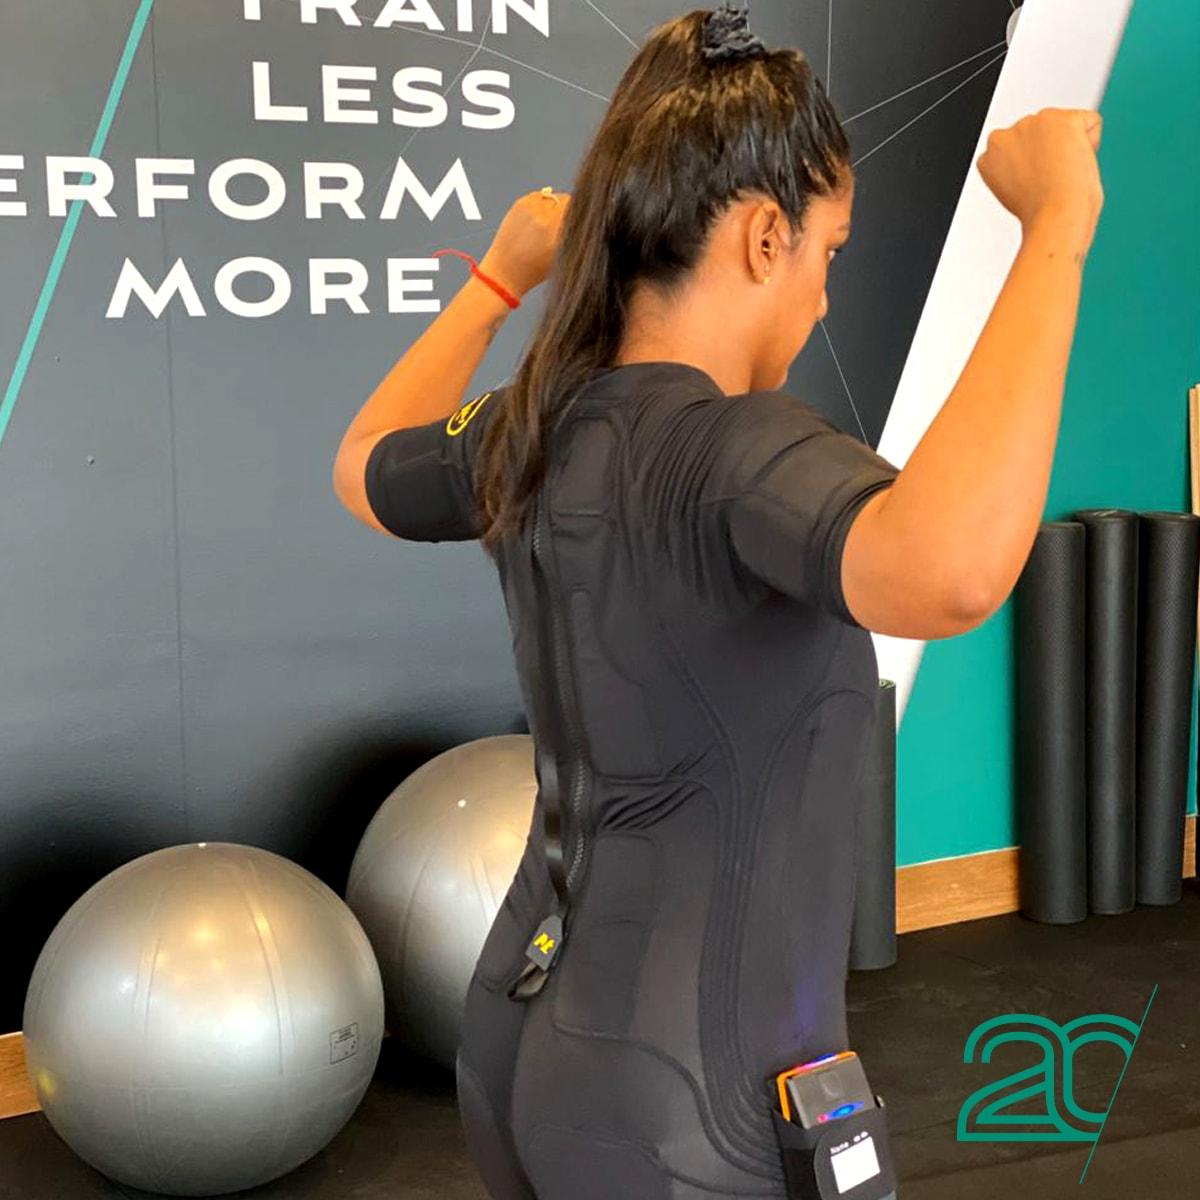 Woman Exercising with EMS at 20PerFit's Parramatta Studio